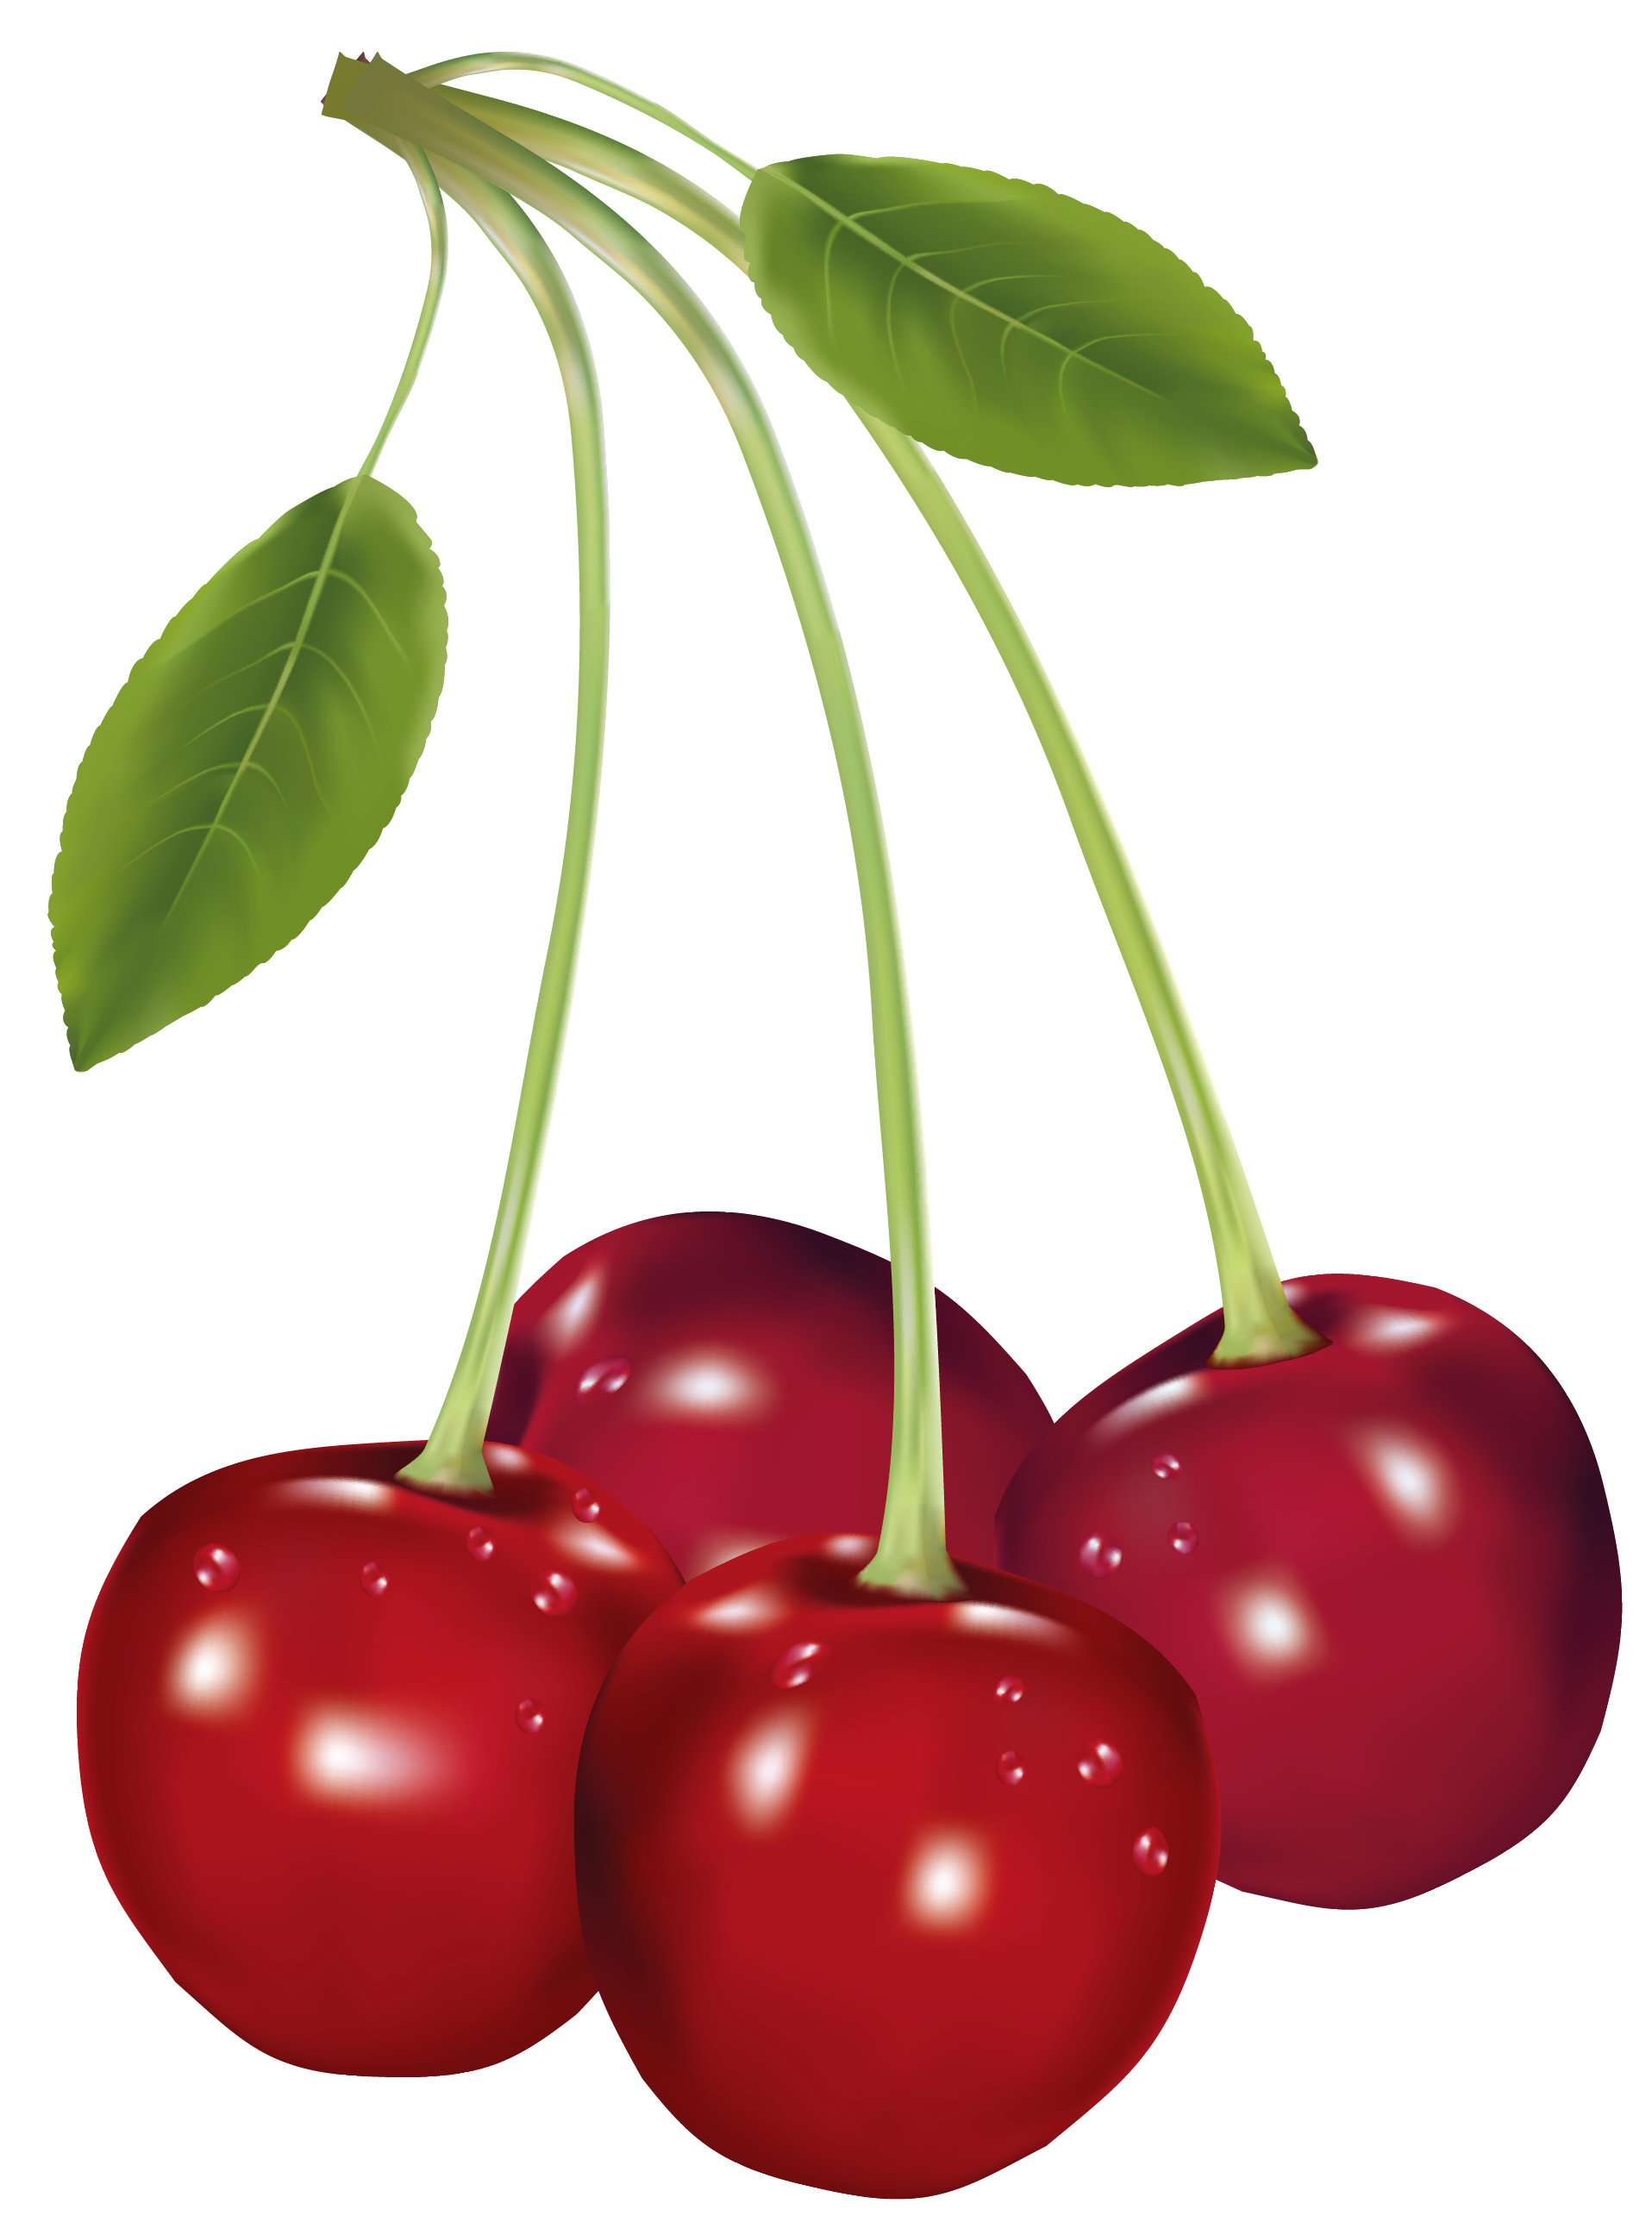 cherries png clipart picture gallery yopriceville high quality rh pinterest com clipart cherry tree clipart cherry pie